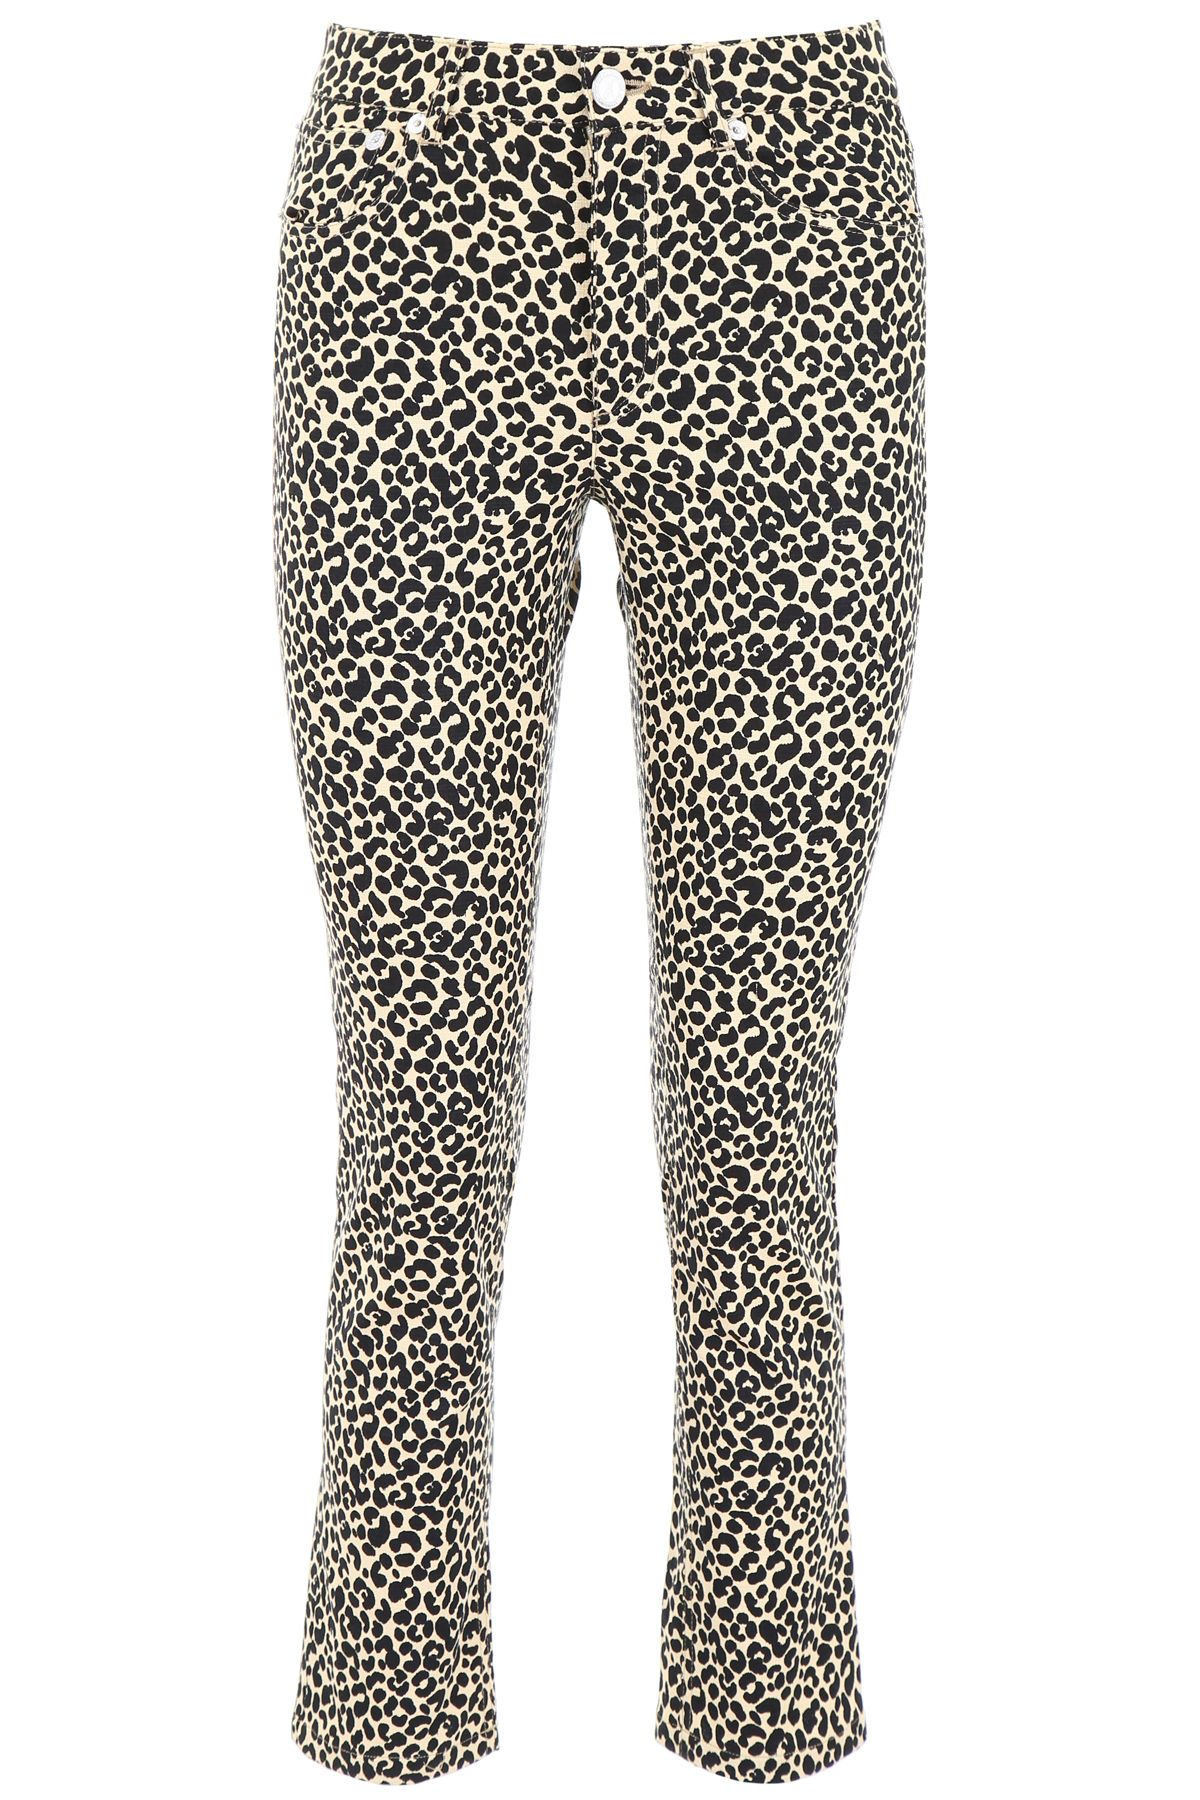 A.P.C. Leopard-printed Trousers